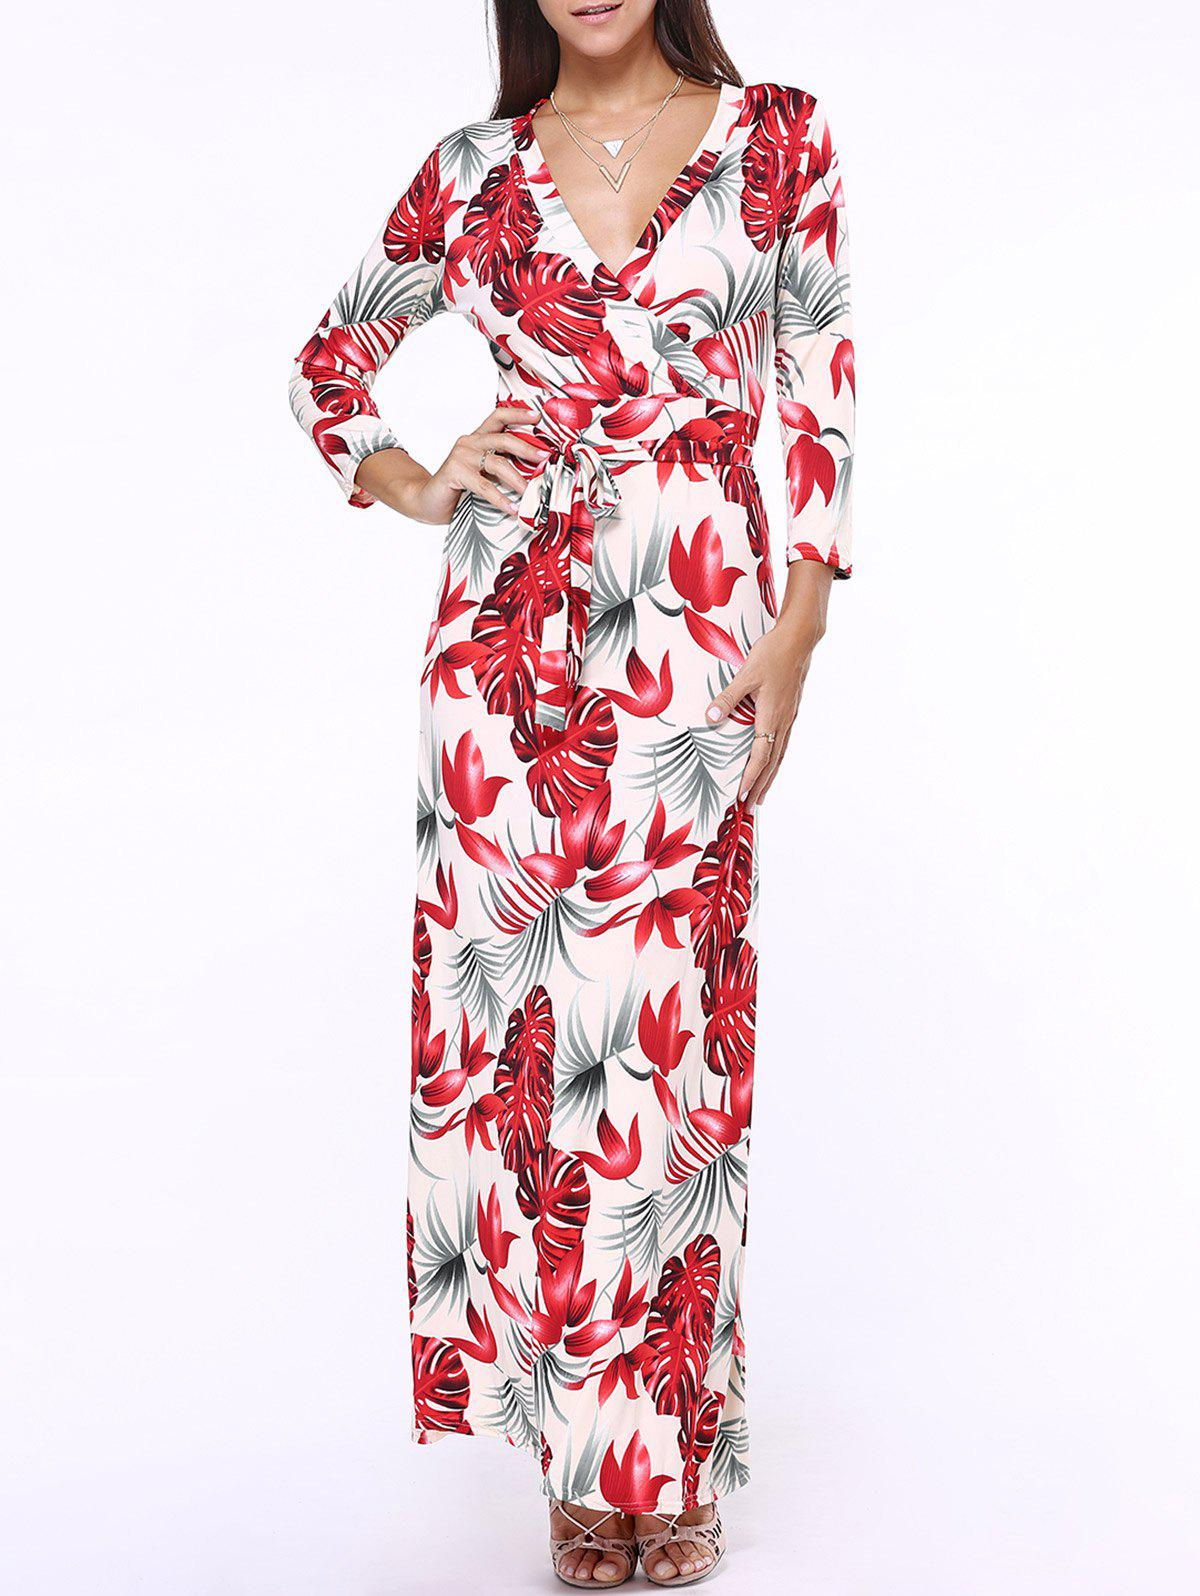 Plunging Neck Floral Print Belted Maxi Dress - RED 5XL